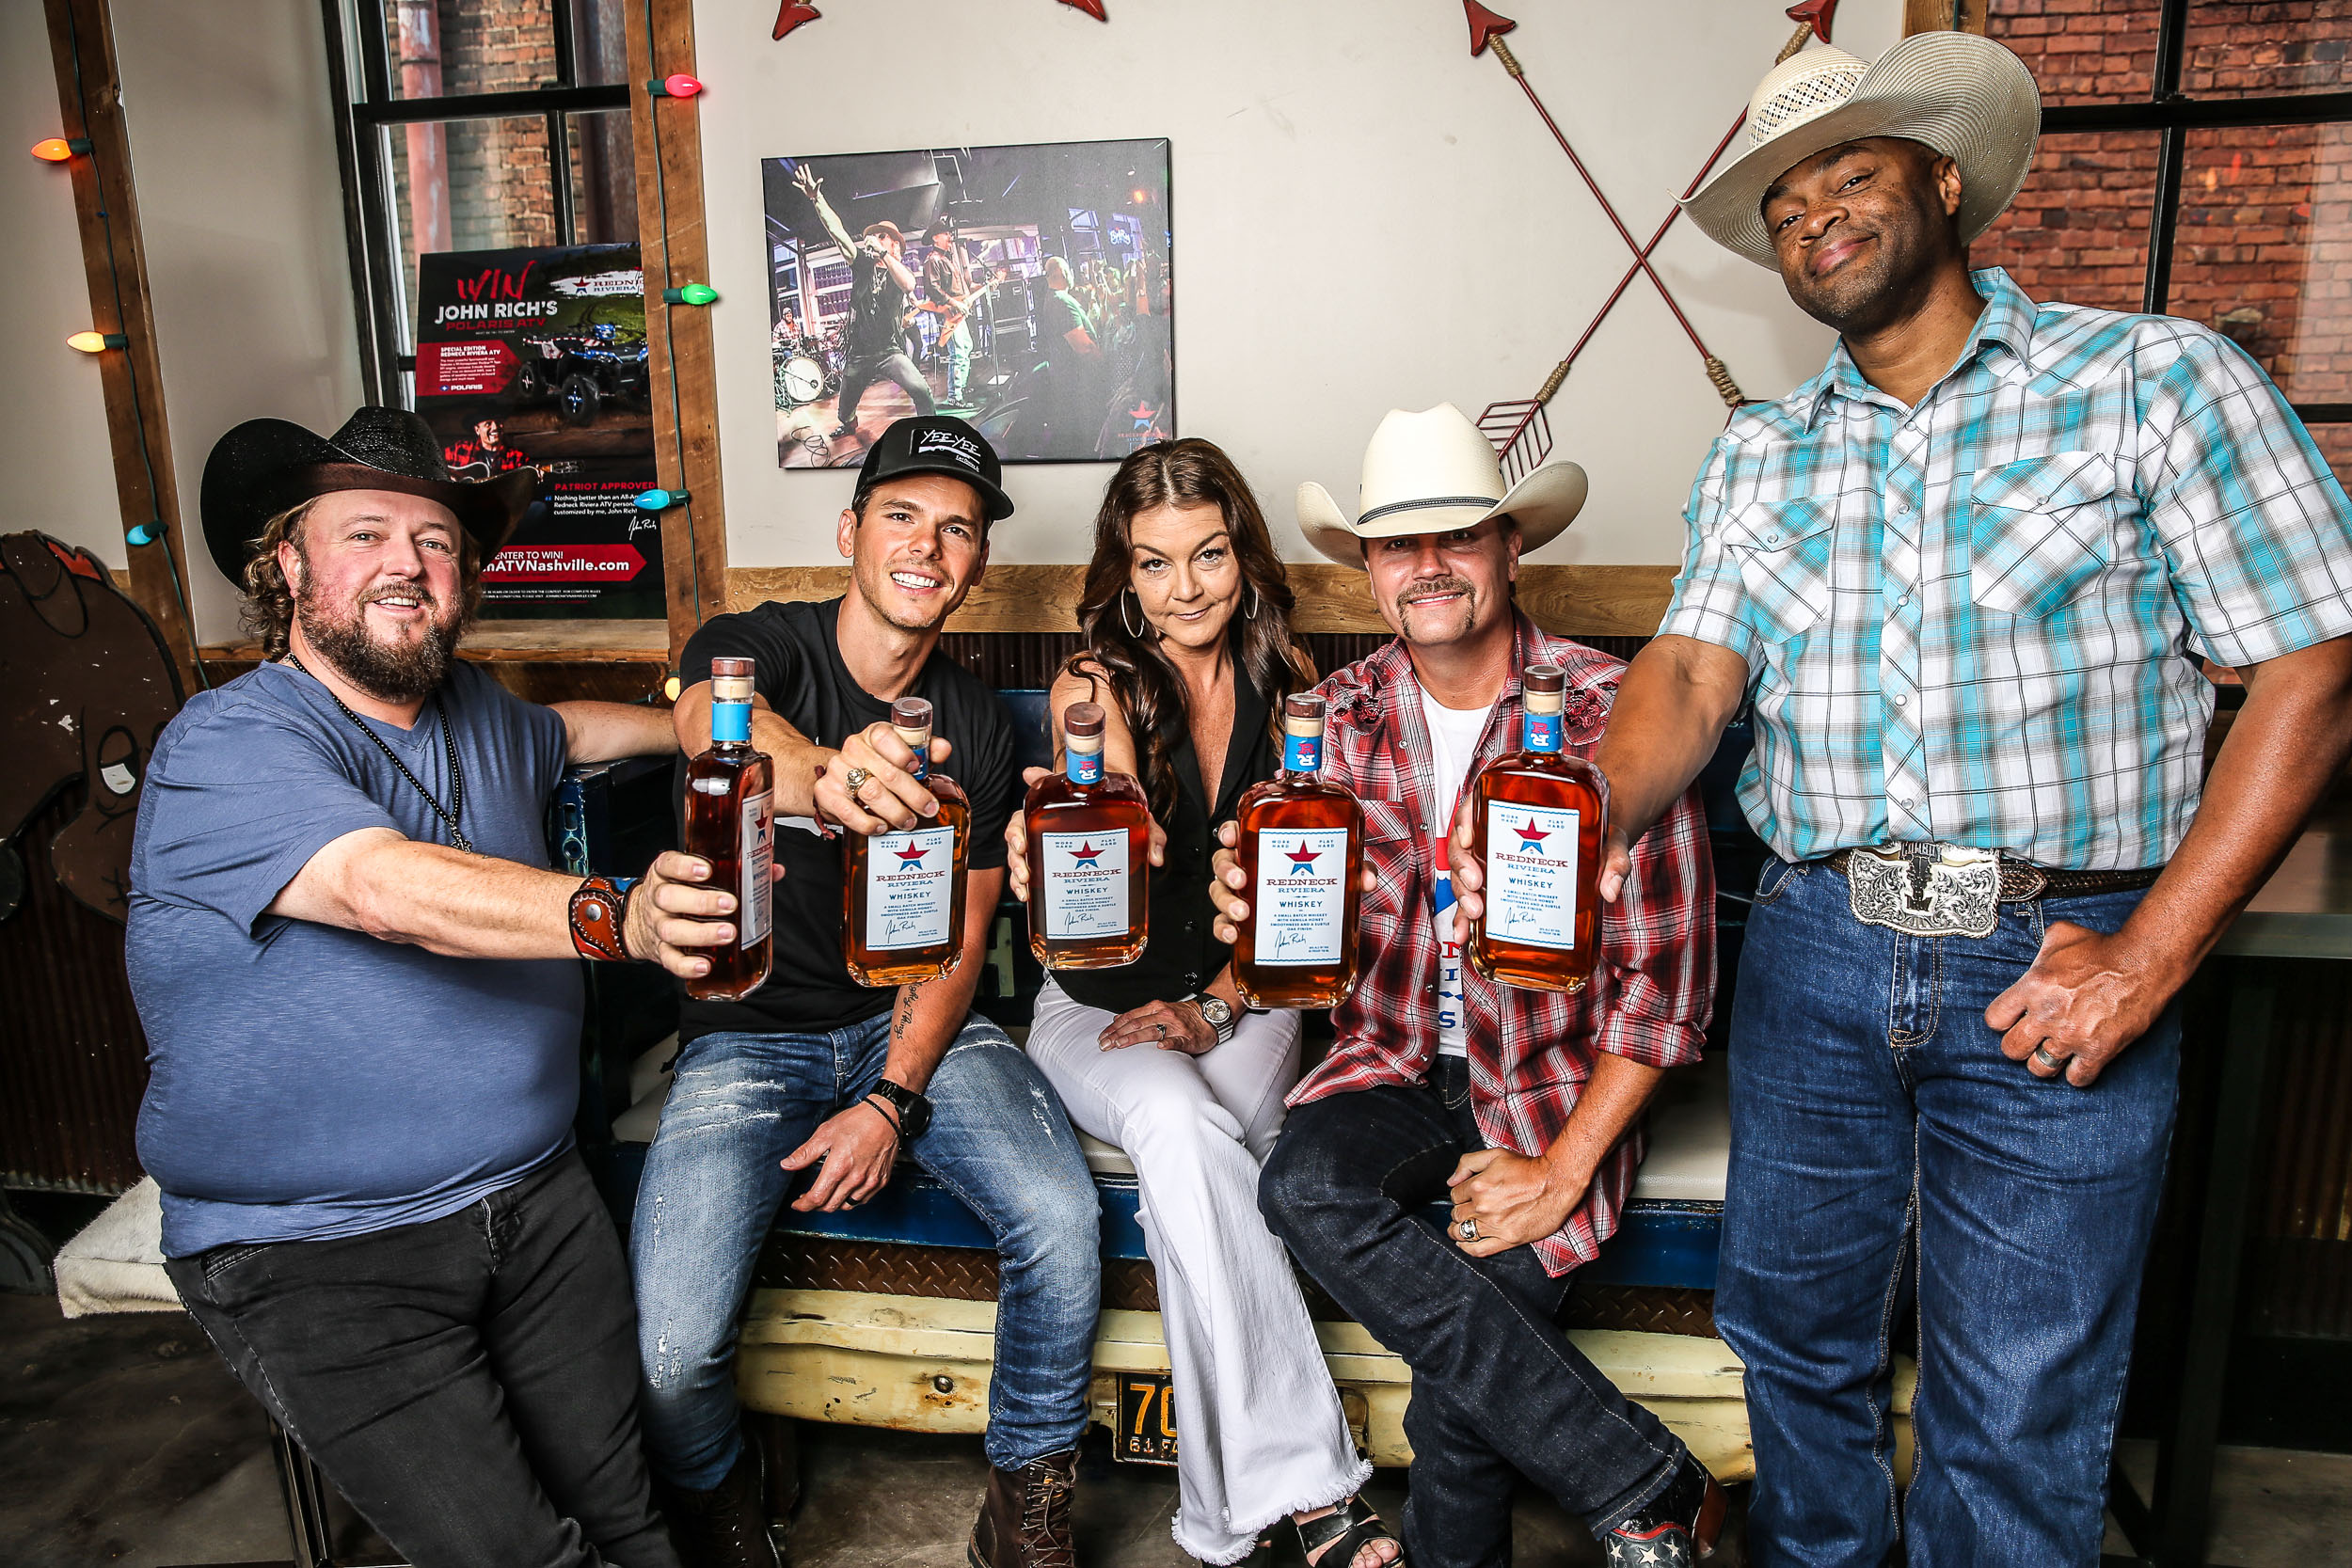 Colt Ford•Granger Smith•Gretchen Wilson•John Rich•Cowboy Troy